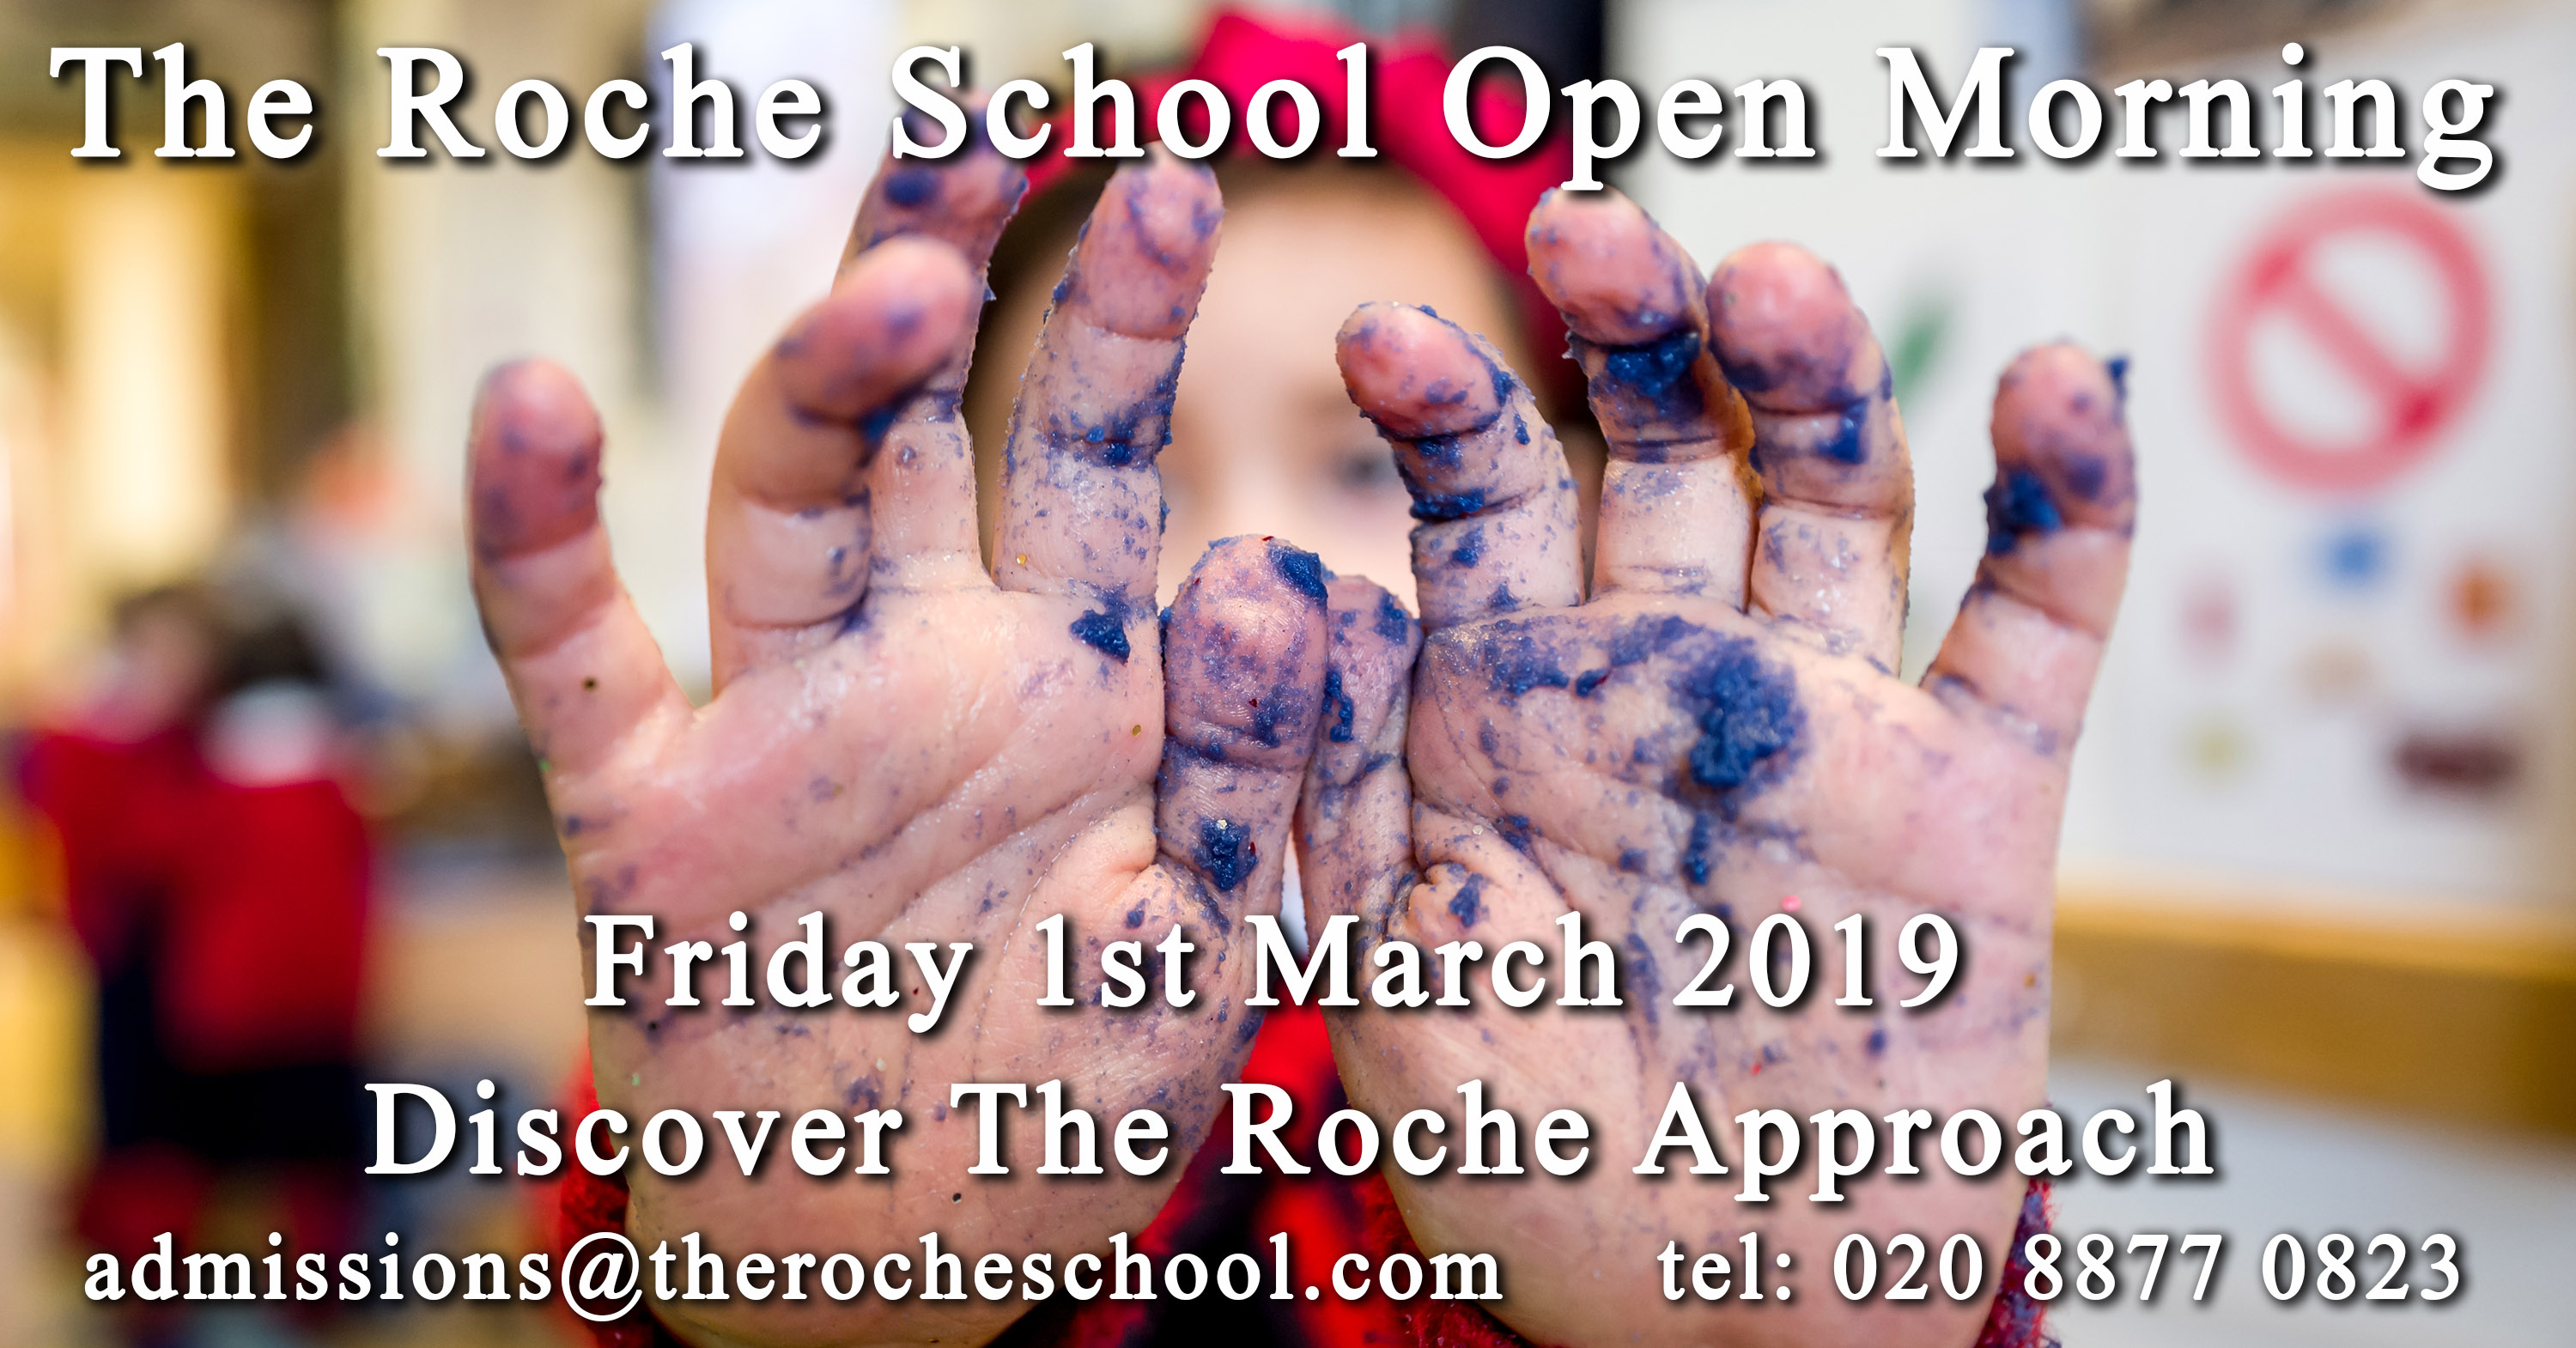 The Roche School, Frogmore, London SW18 1HW:   First edit